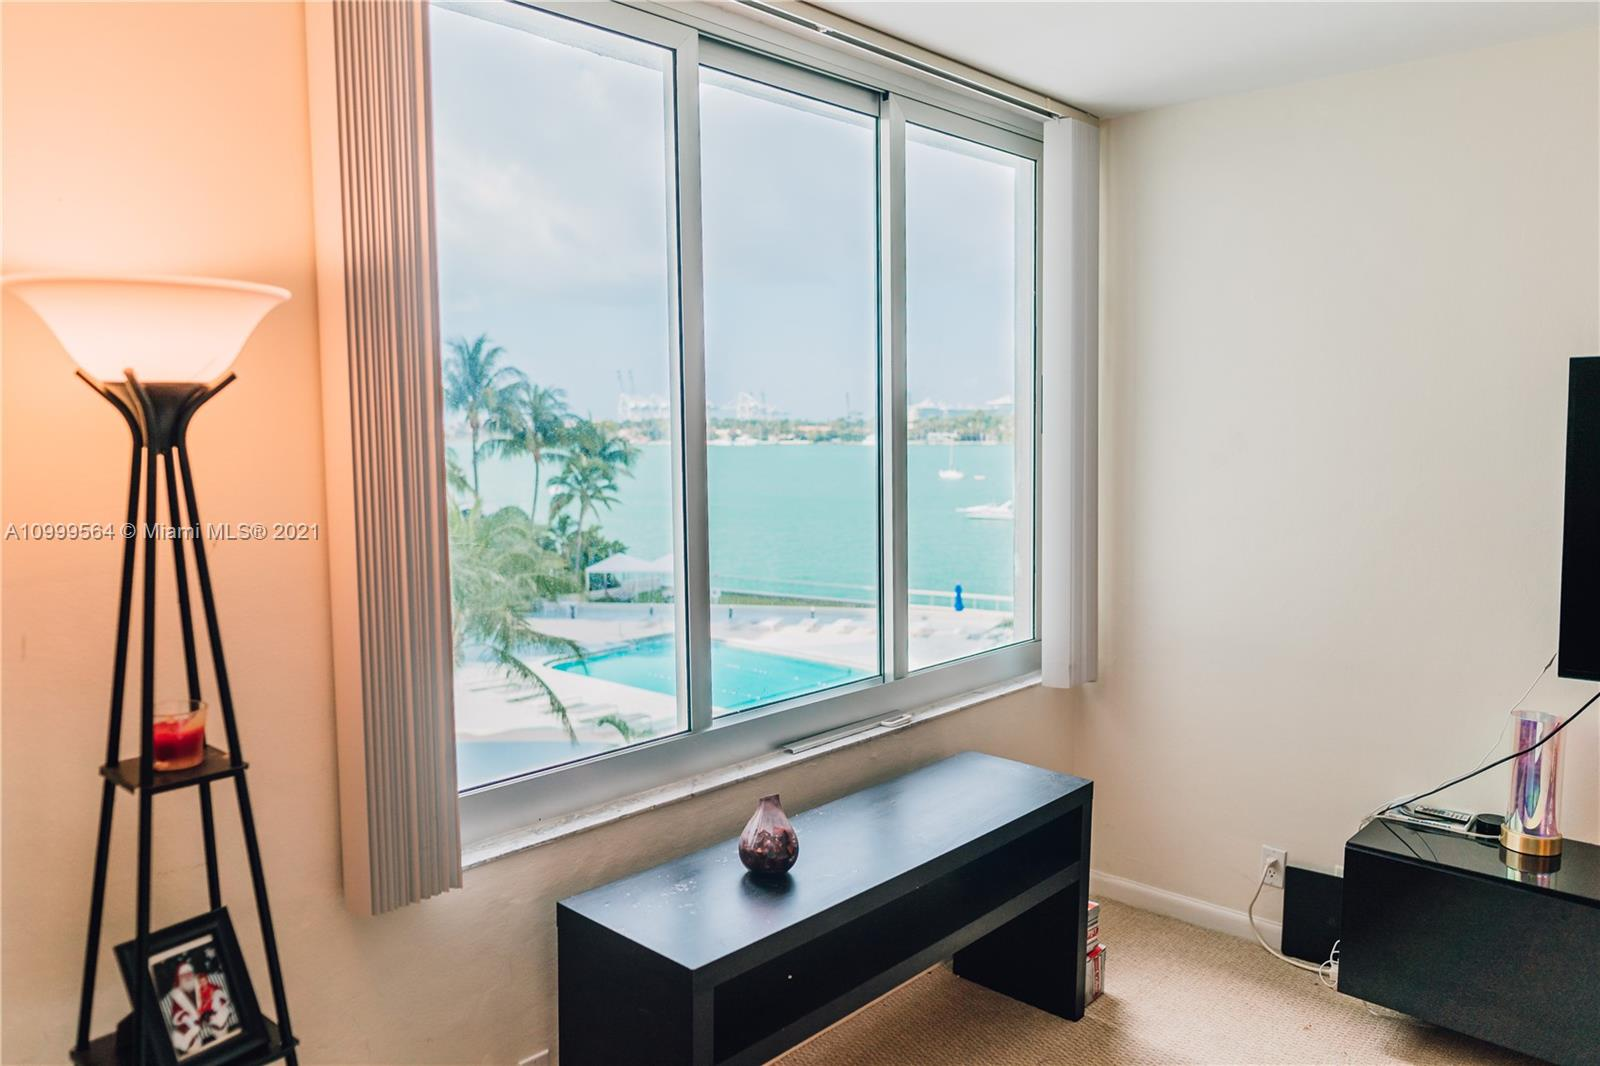 Great location in South Beach! The biggest one bedroom model in the building. 970sf with direct water views. Remodeled kitchen and bathroom. High Impact Windows. Building offers heated pool, BBQ area, gym & gourmet market on site.  Short distance to Whole Foods, Lincoln Road, Trader's Joe; Restaurants, Miami Beach Flamingo Park and the beach!! Pet Friendly Building!